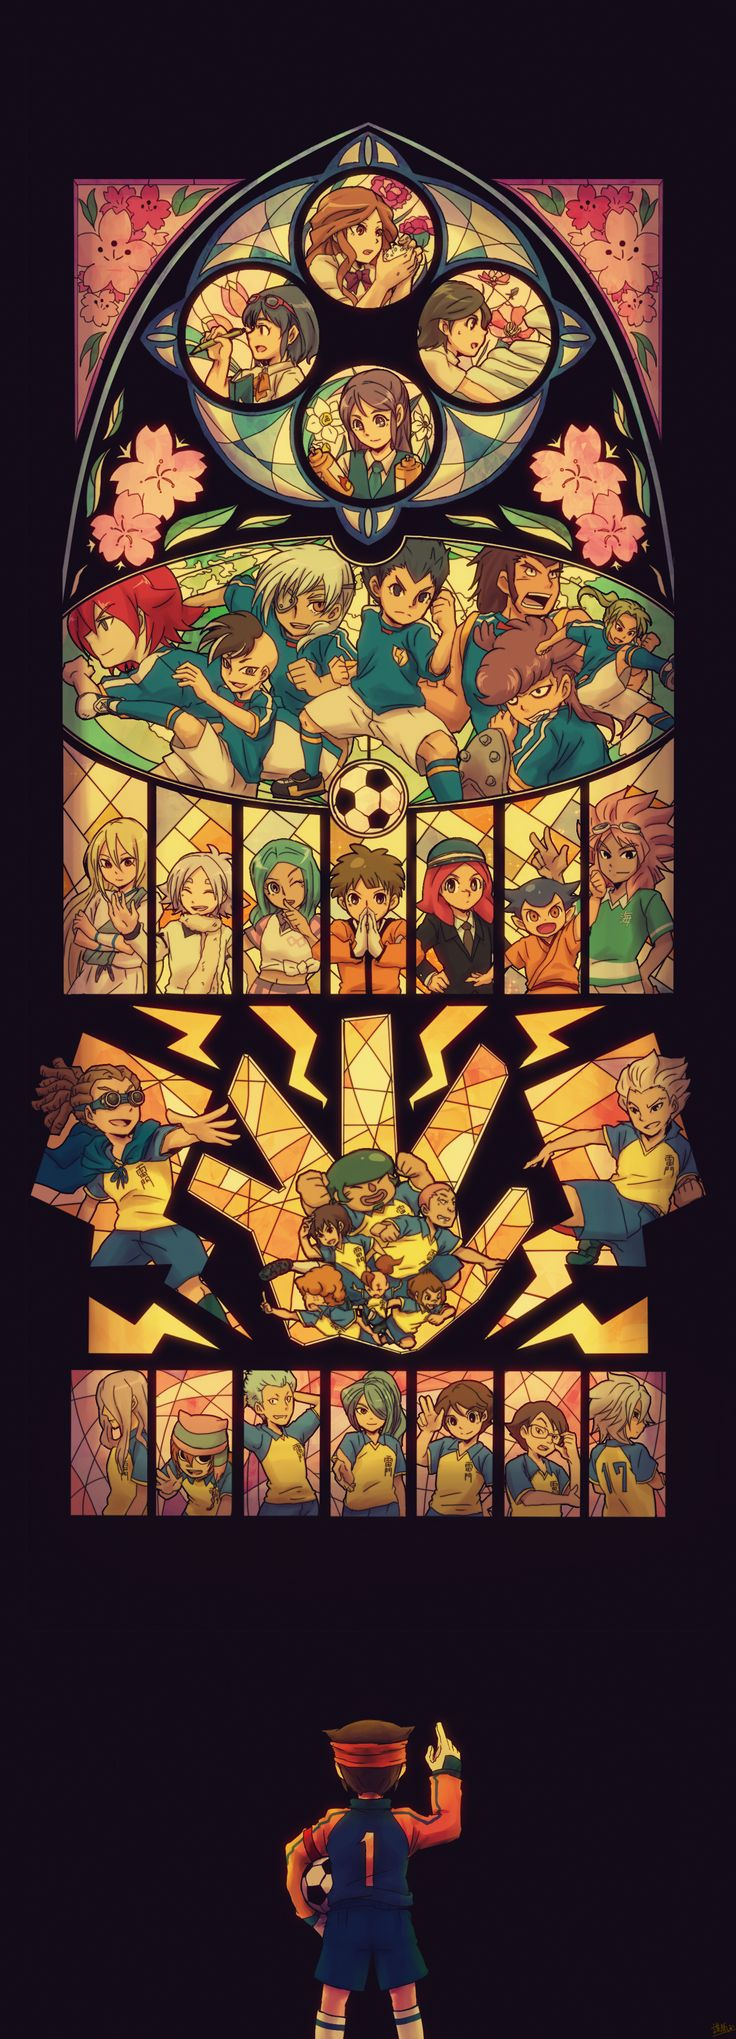 Not mine. The most beautiful art I've ever seen. Love you, Inazuma Eleven. ❤